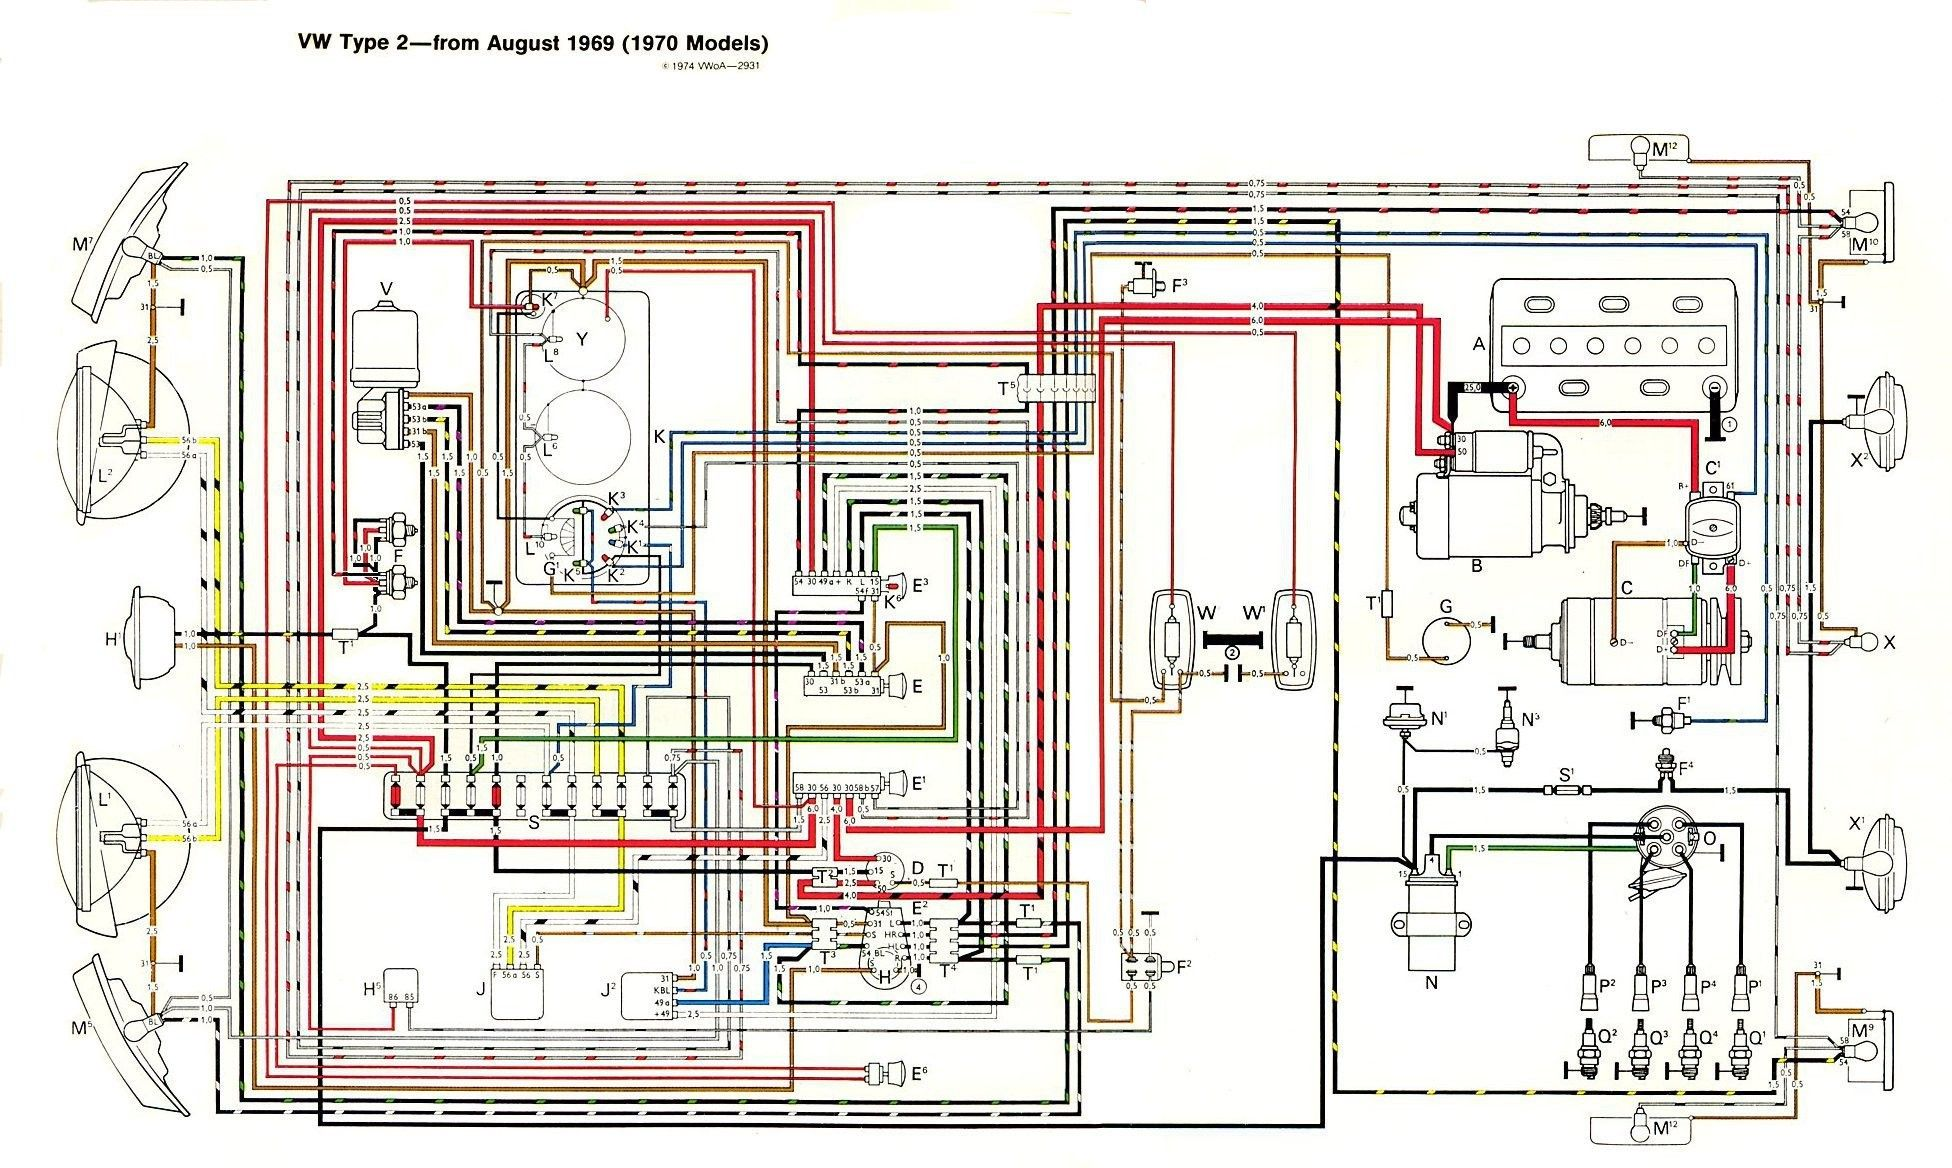 2012 Xto Bad Boy Stamatic Wiring Diagram In 2021 Electrical Wiring Diagram Diagram Vw Golf 1